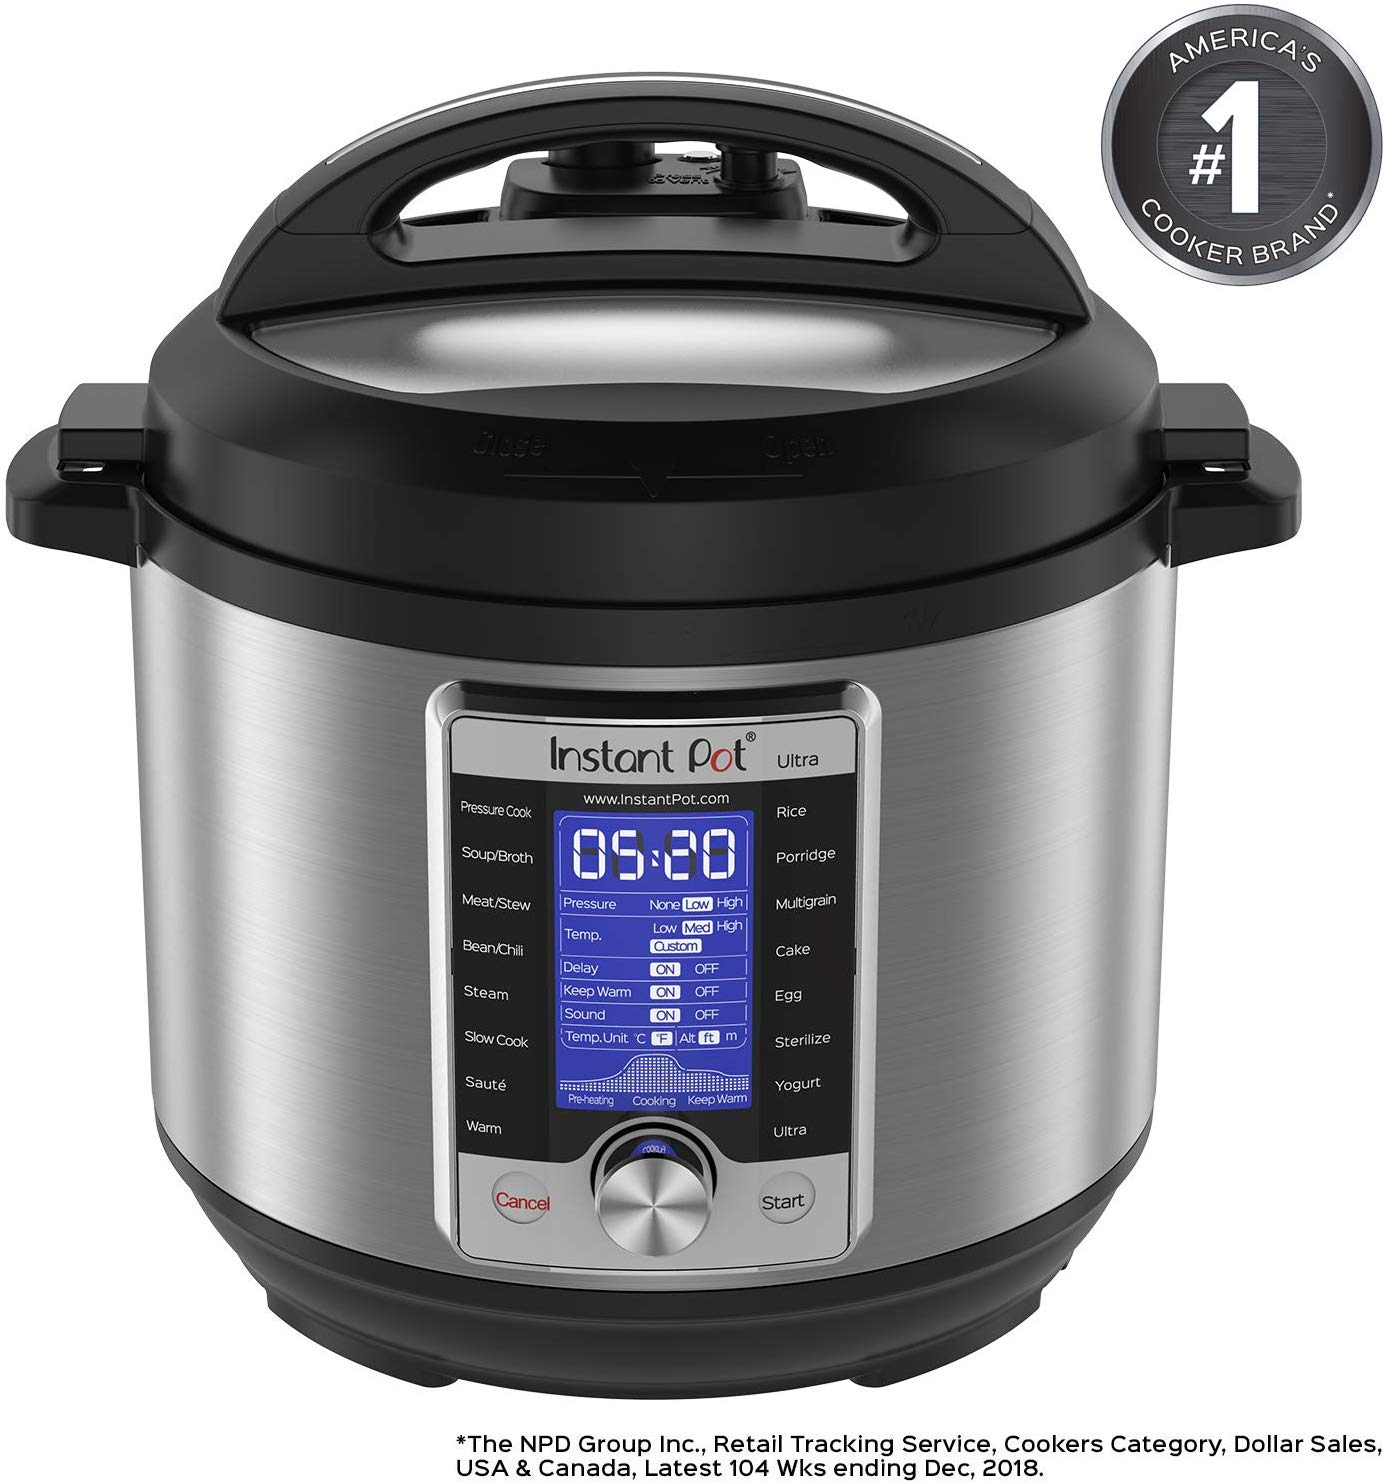 Instant Pot 6qt 10-in-1